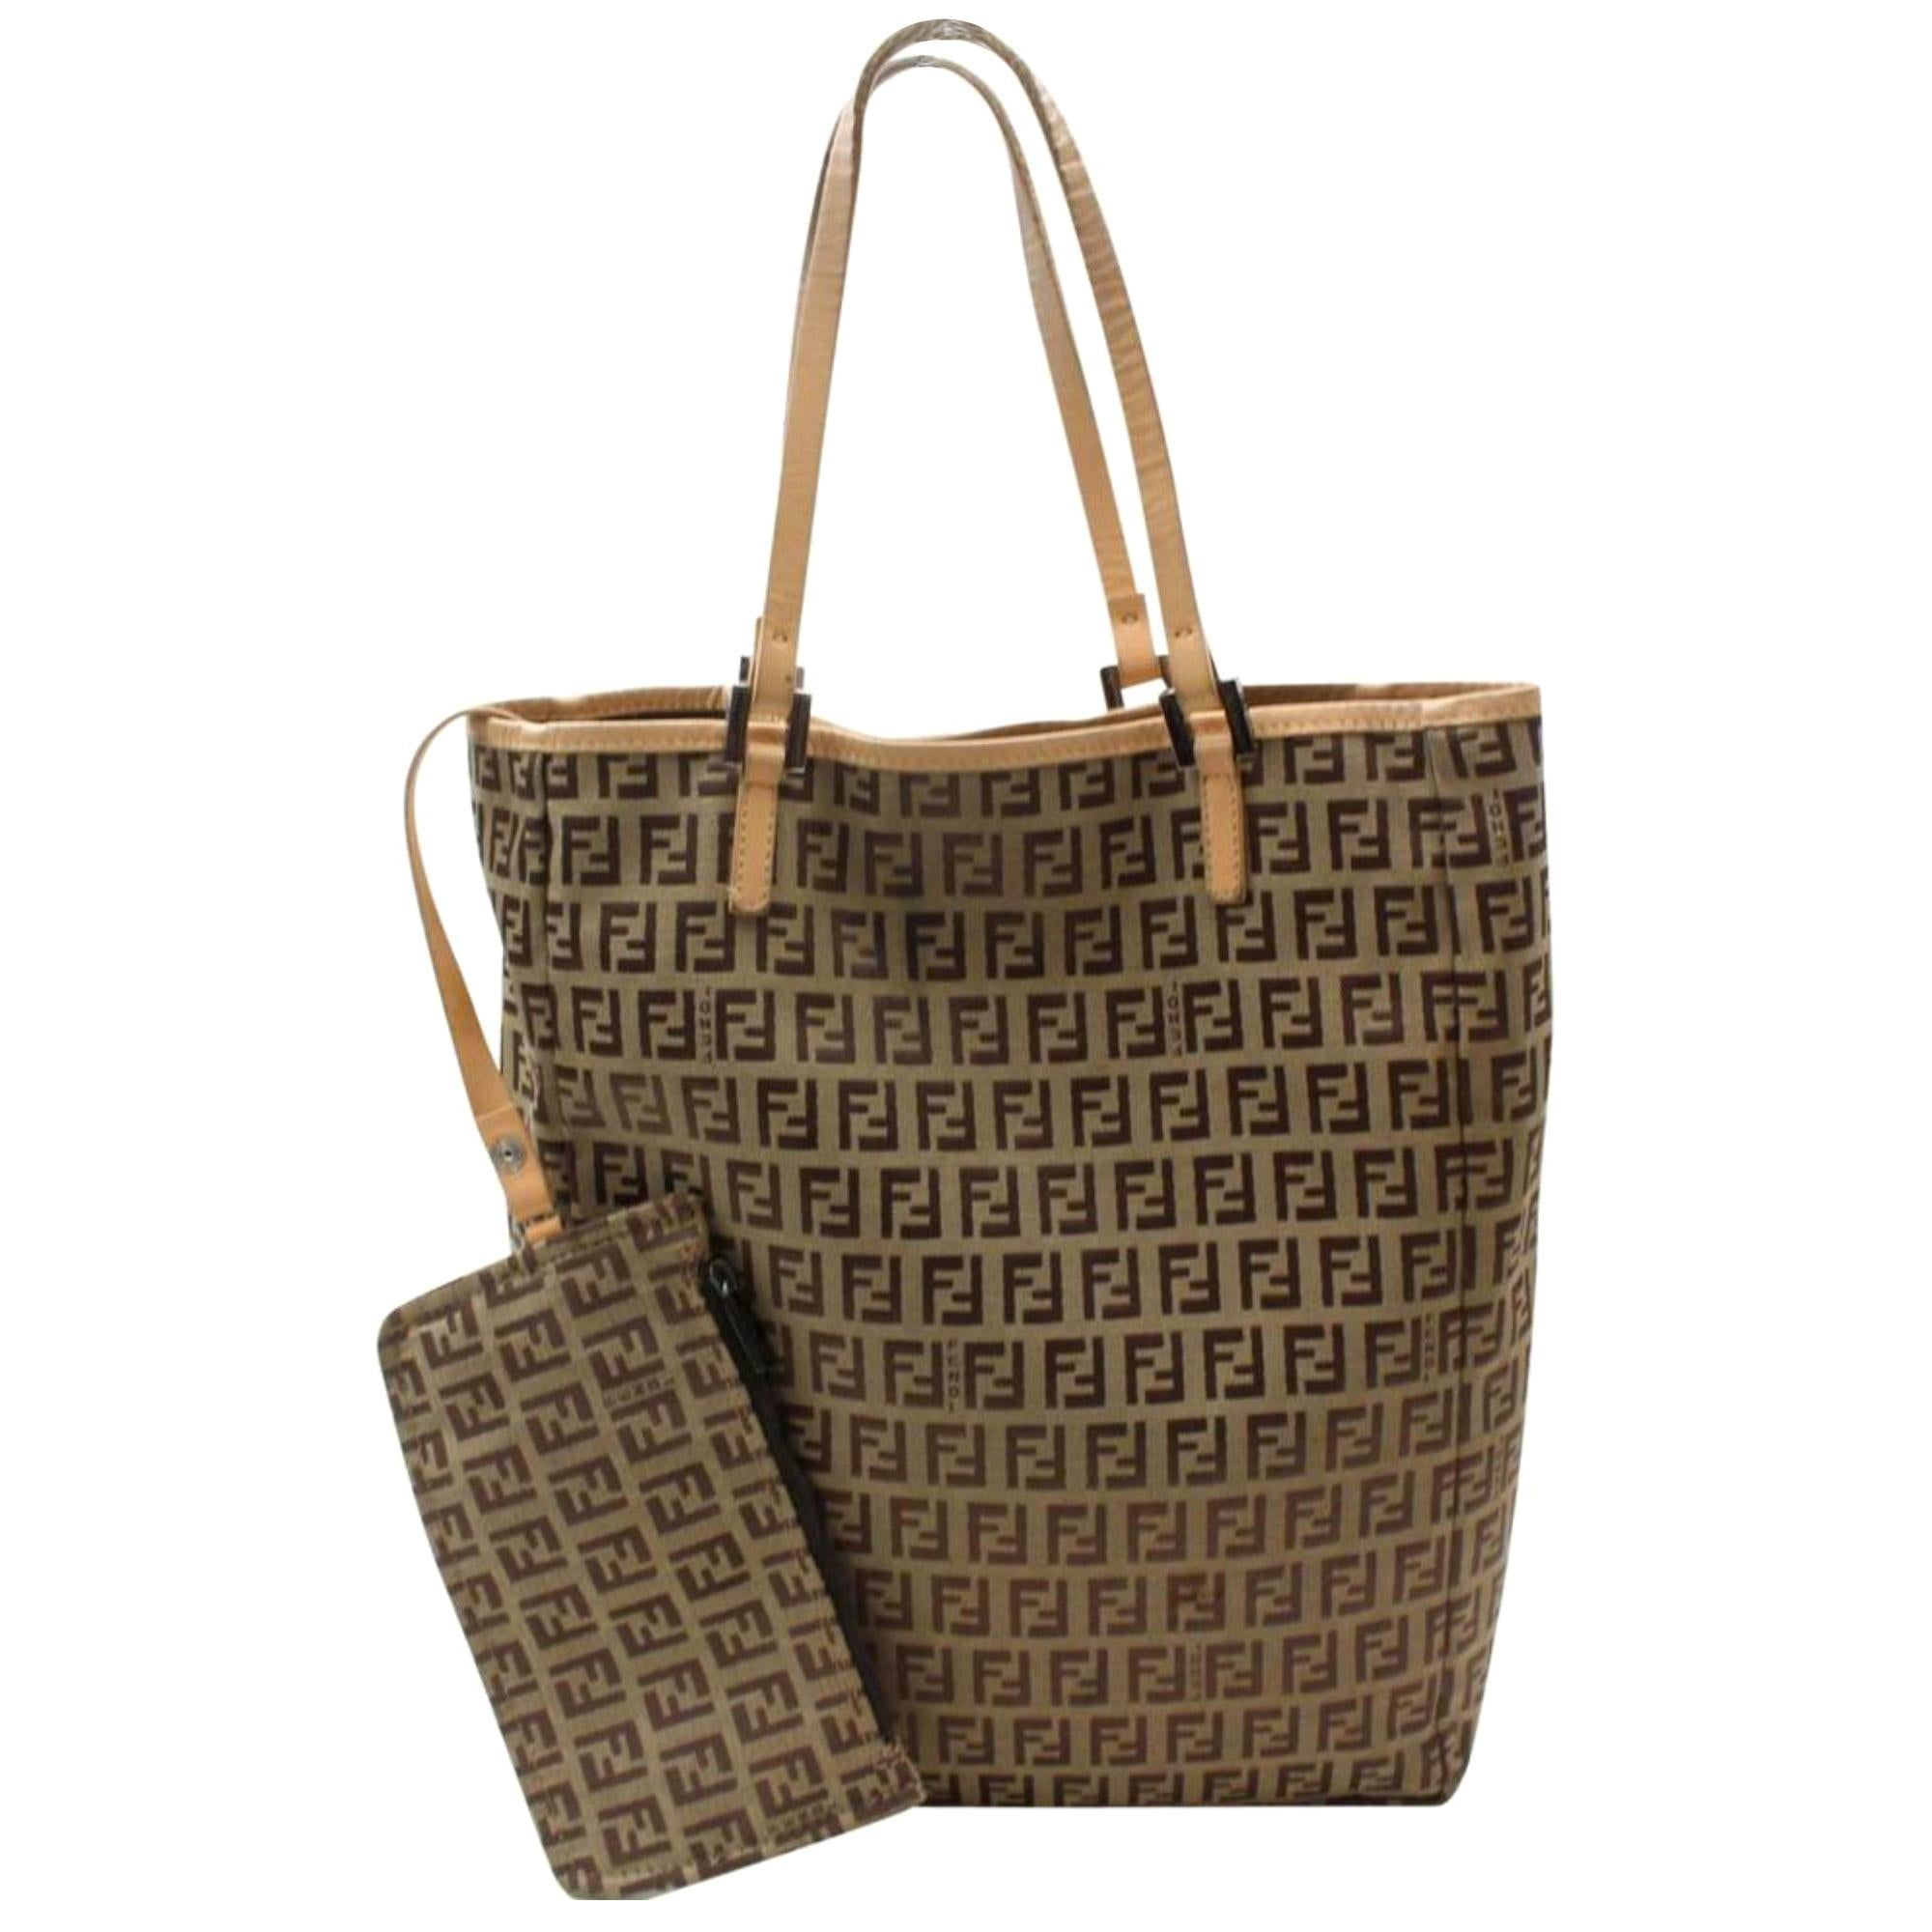 9ef40ad9b937 Vintage Fendi Tote Bags - 196 For Sale at 1stdibs